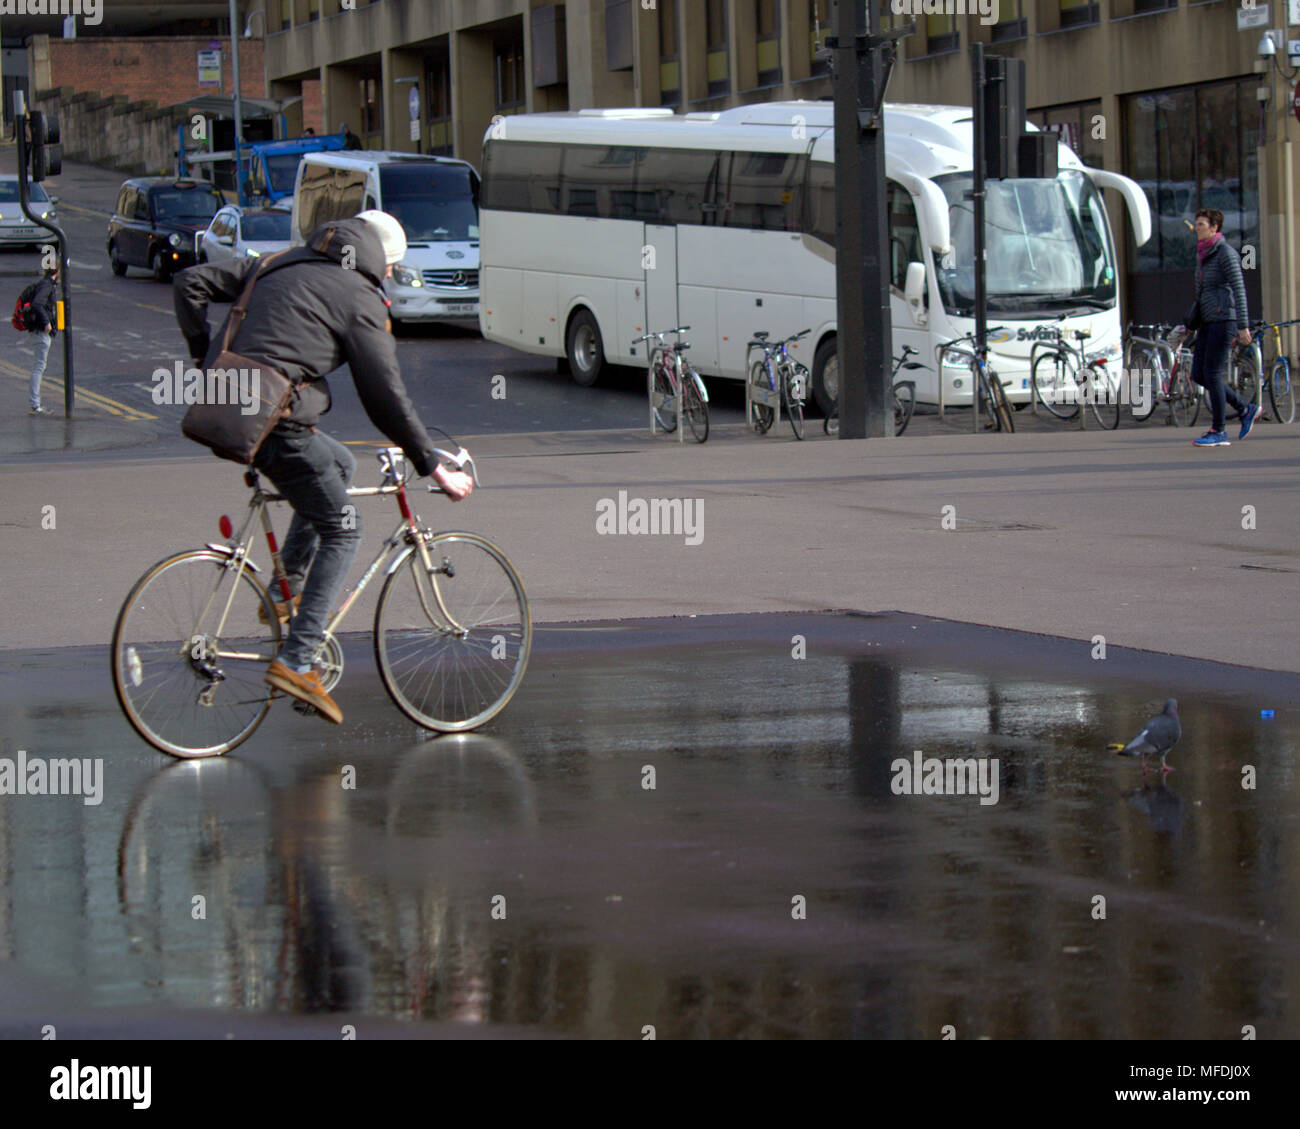 Glasgow, Scotland, UK 25th April. UK Weather: young man cycles on bike reflection in puddle with pigeon white tourist bus George Square locals and tourists inn  Sunshine and showers as the locals and tourists enjoy the beginning of summer. Gerard Ferry/Alamy news - Stock Image